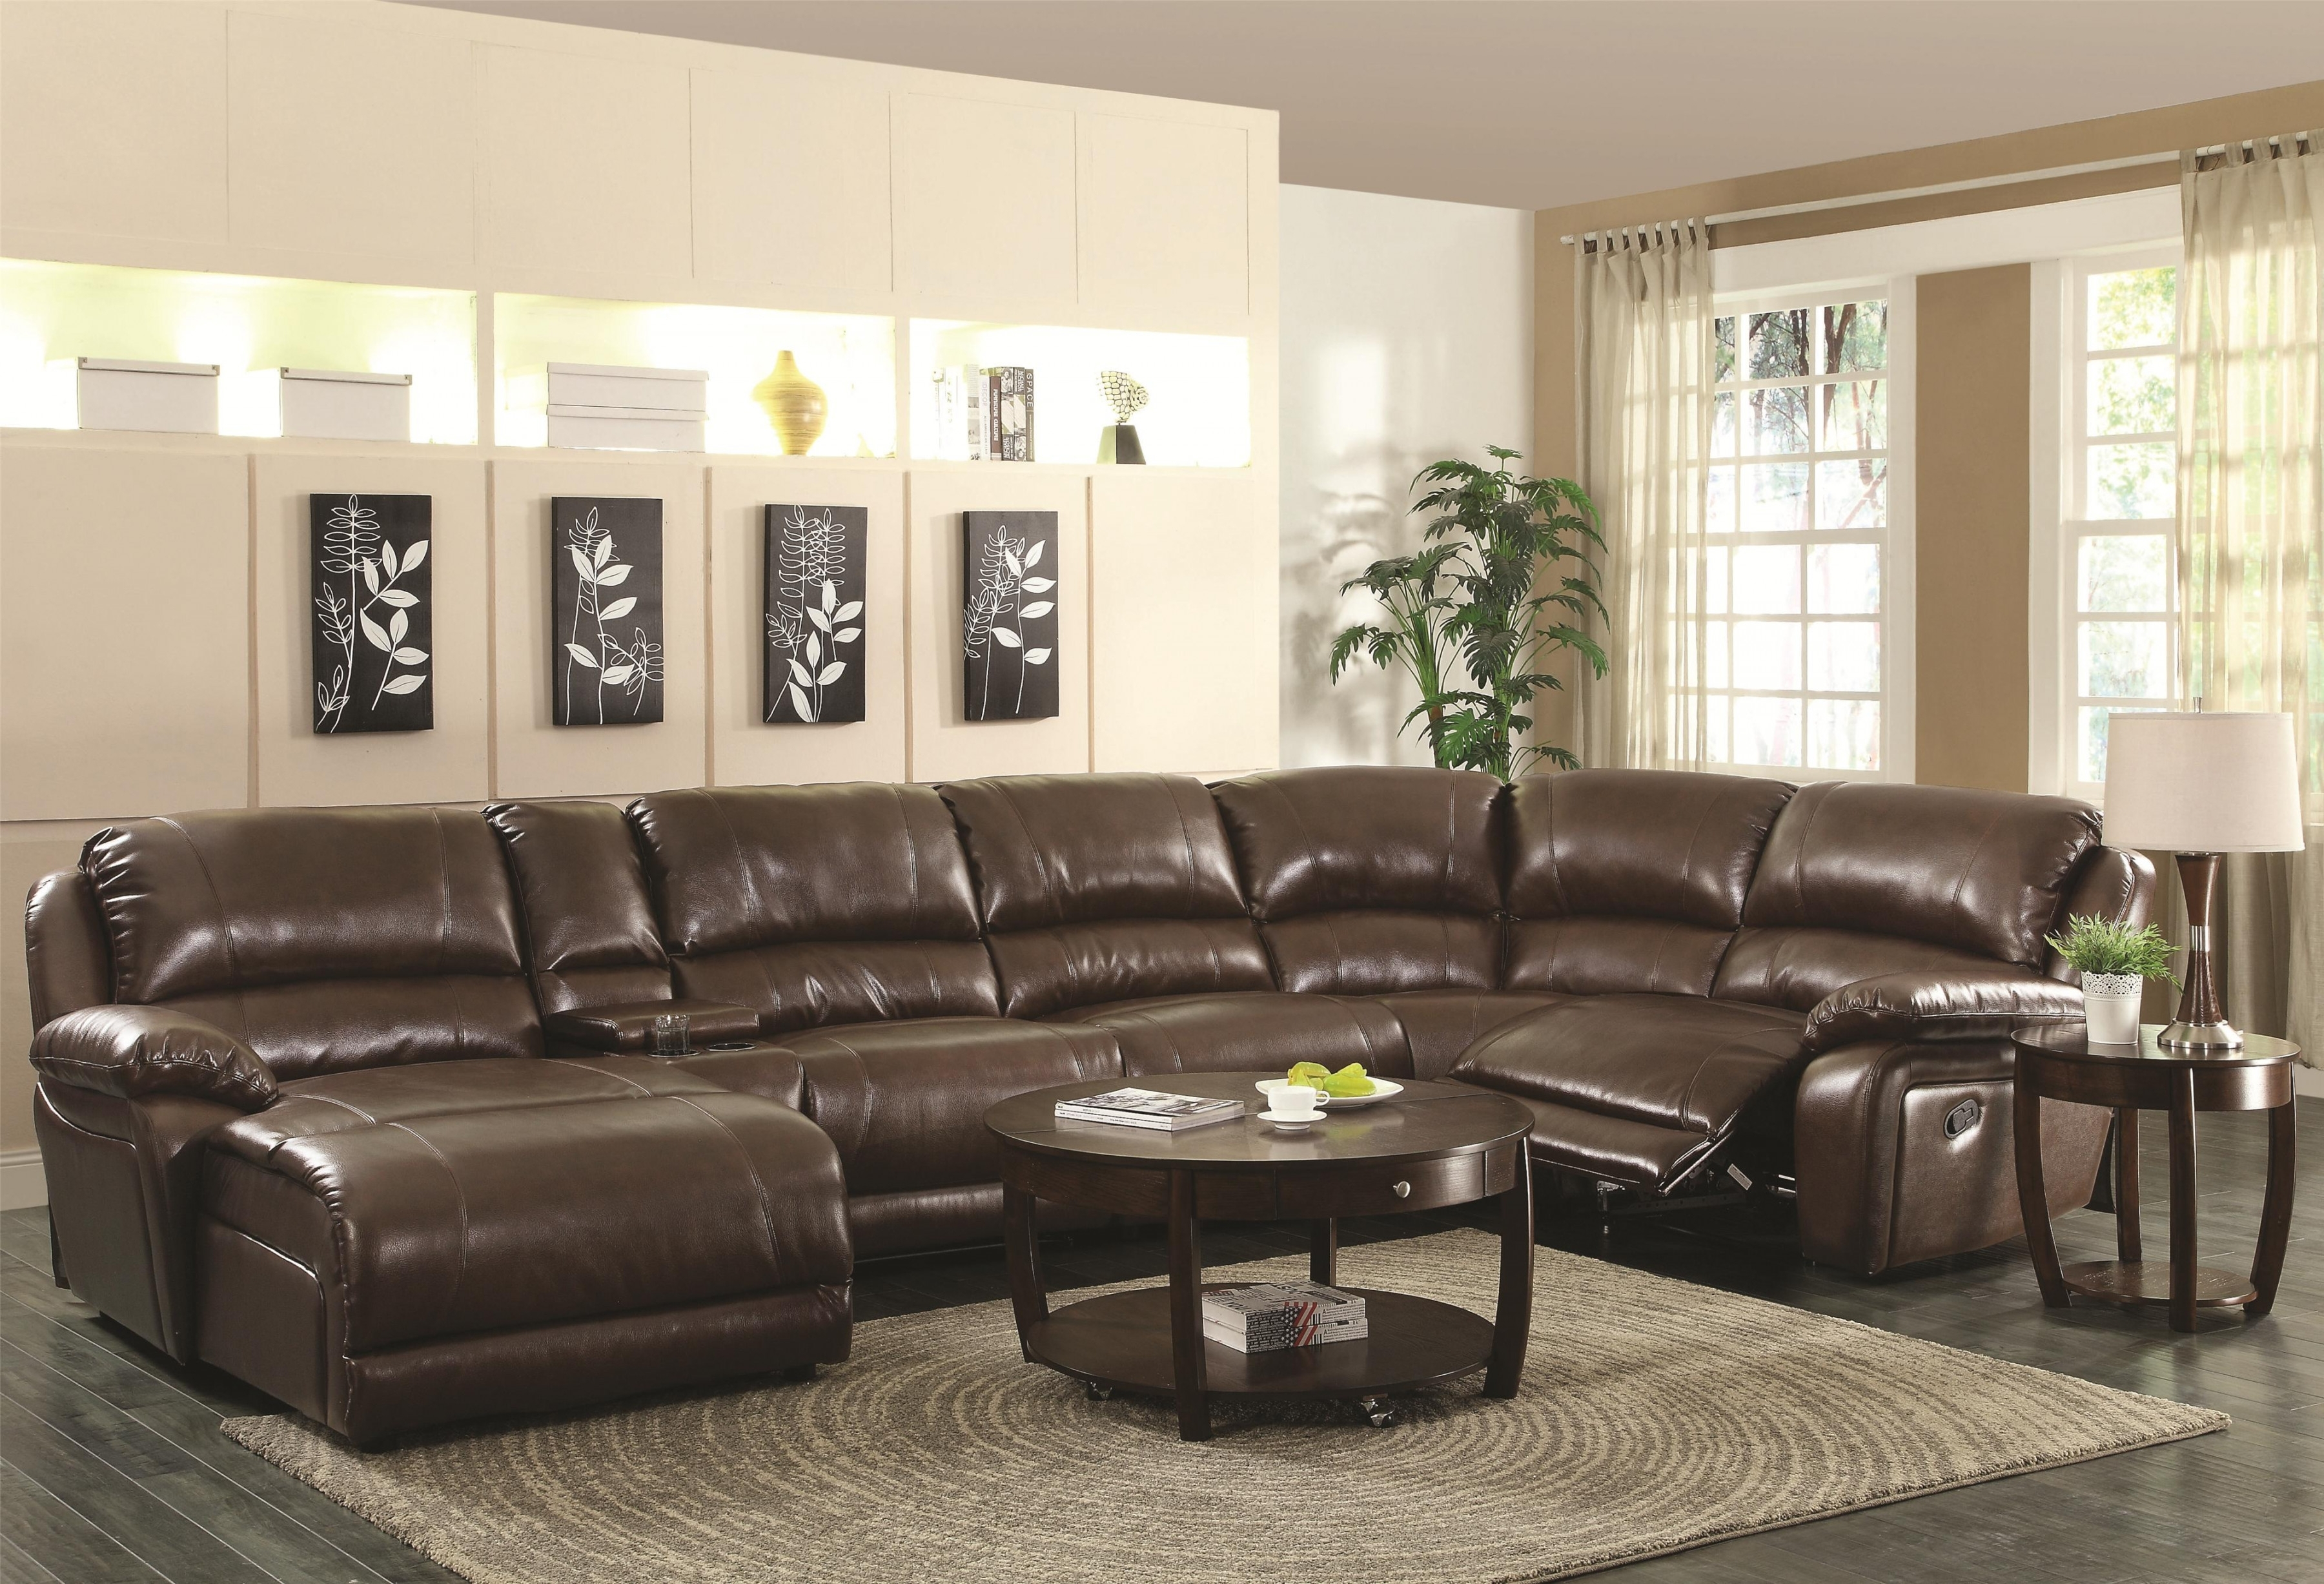 Home : Elegant Sectional Sofas With Recliners And Chaise Home | Home In Elegant Sectional Sofas (View 8 of 10)